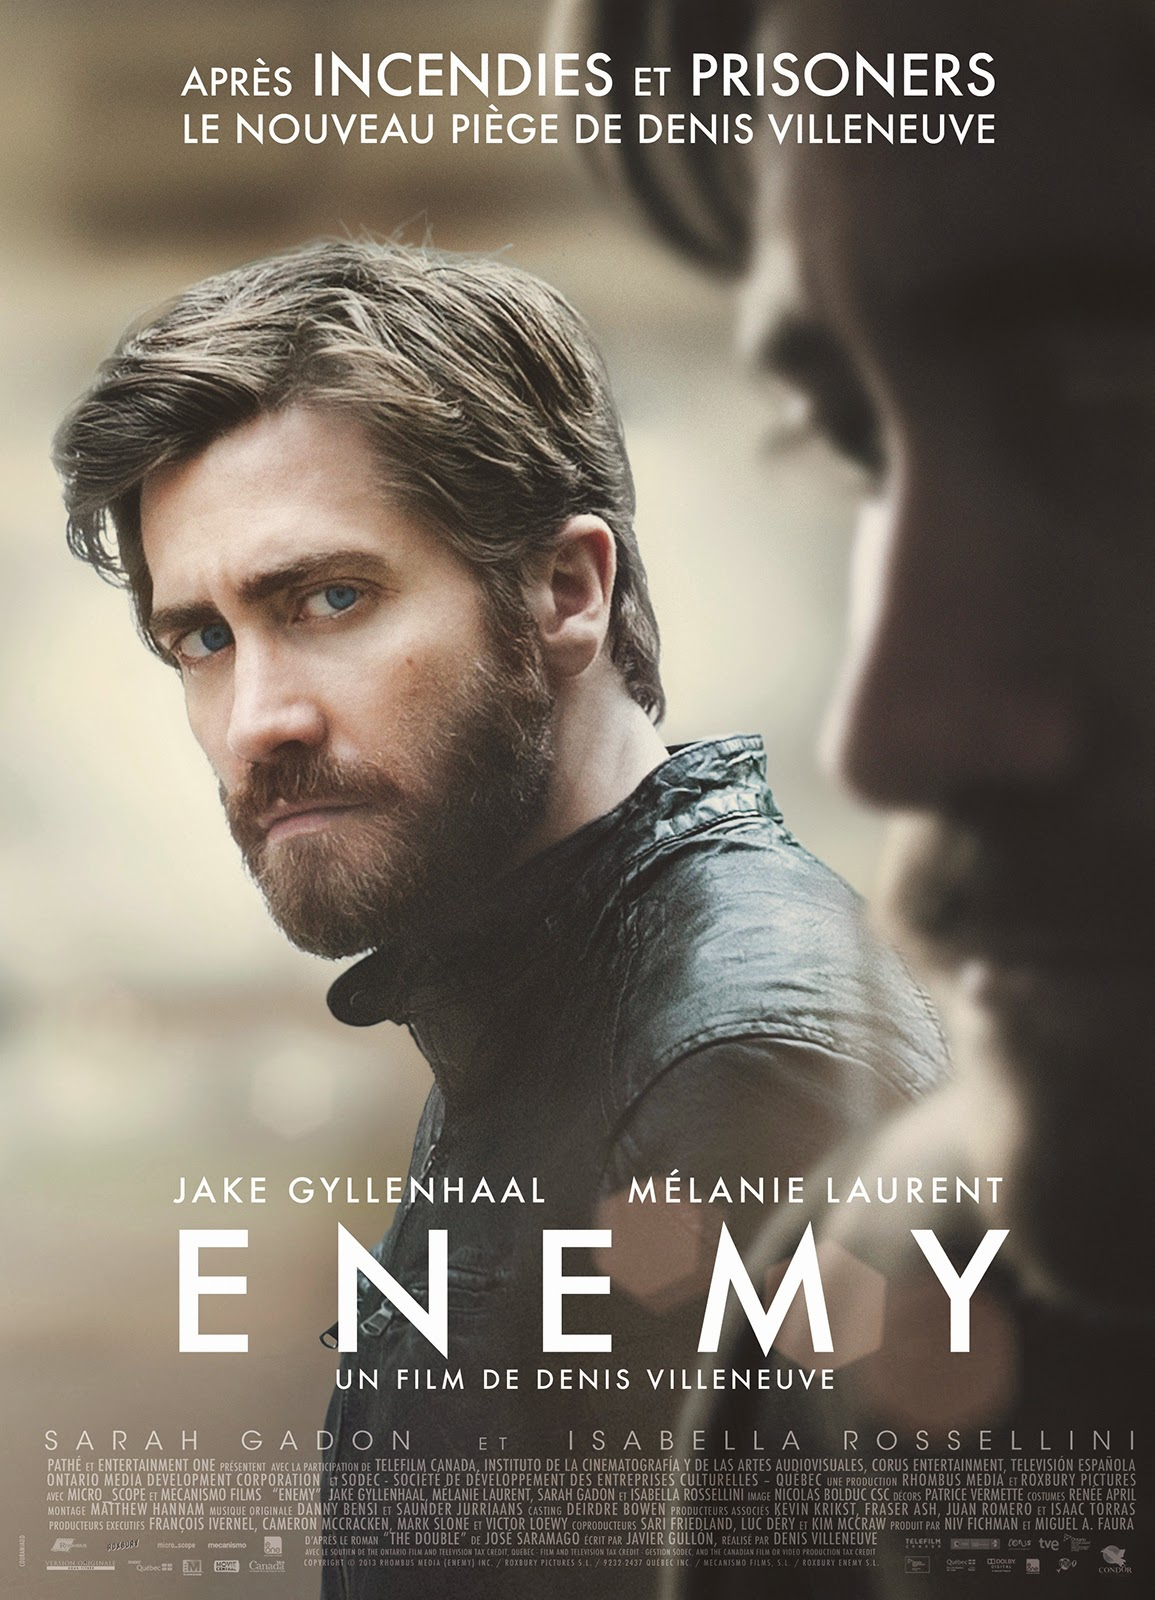 http://fuckingcinephiles.blogspot.fr/2014/08/critique-enemy.html